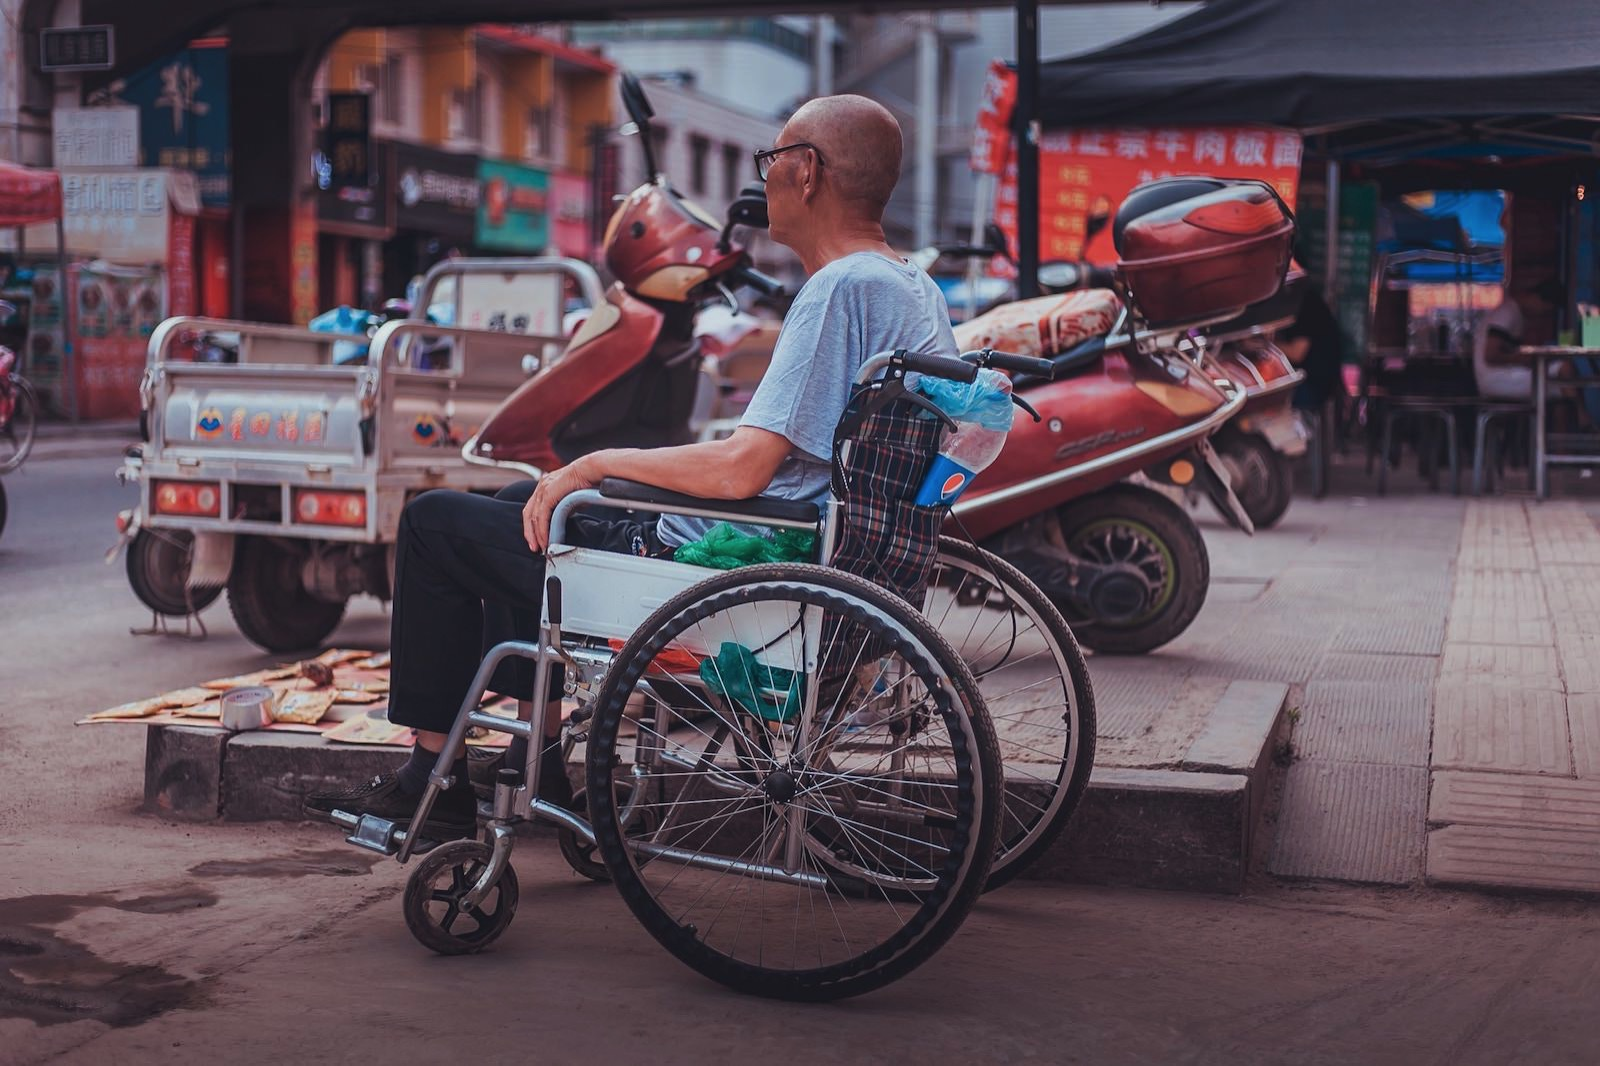 Wooozxh 296121 unsplash wheelchair